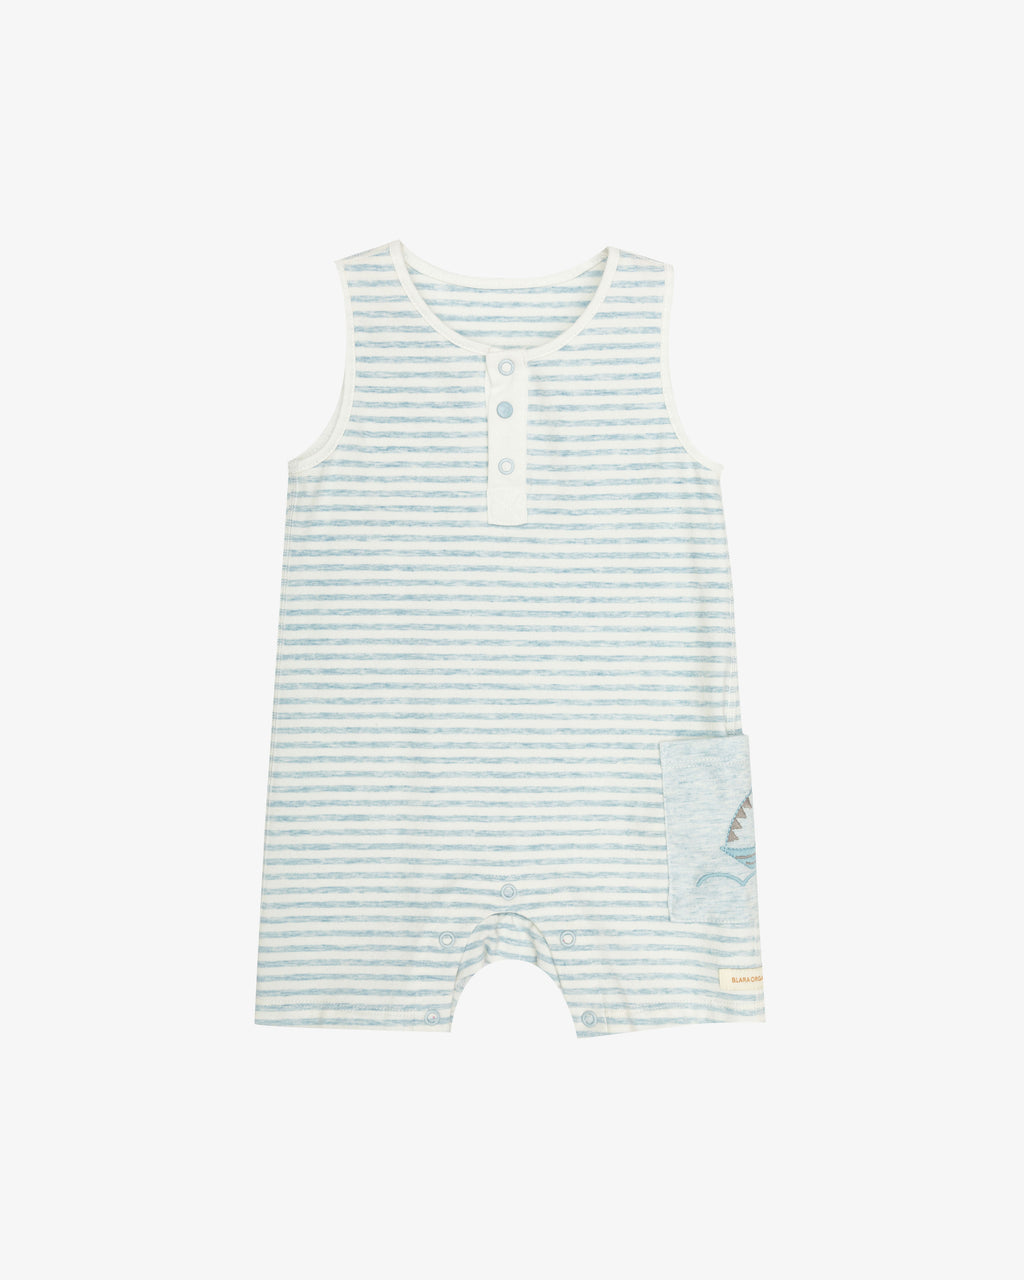 Blue Stripes - Shorty Short Sail Romper - Side Pocket | Blara Organic House | Sustainable Baby Clothing